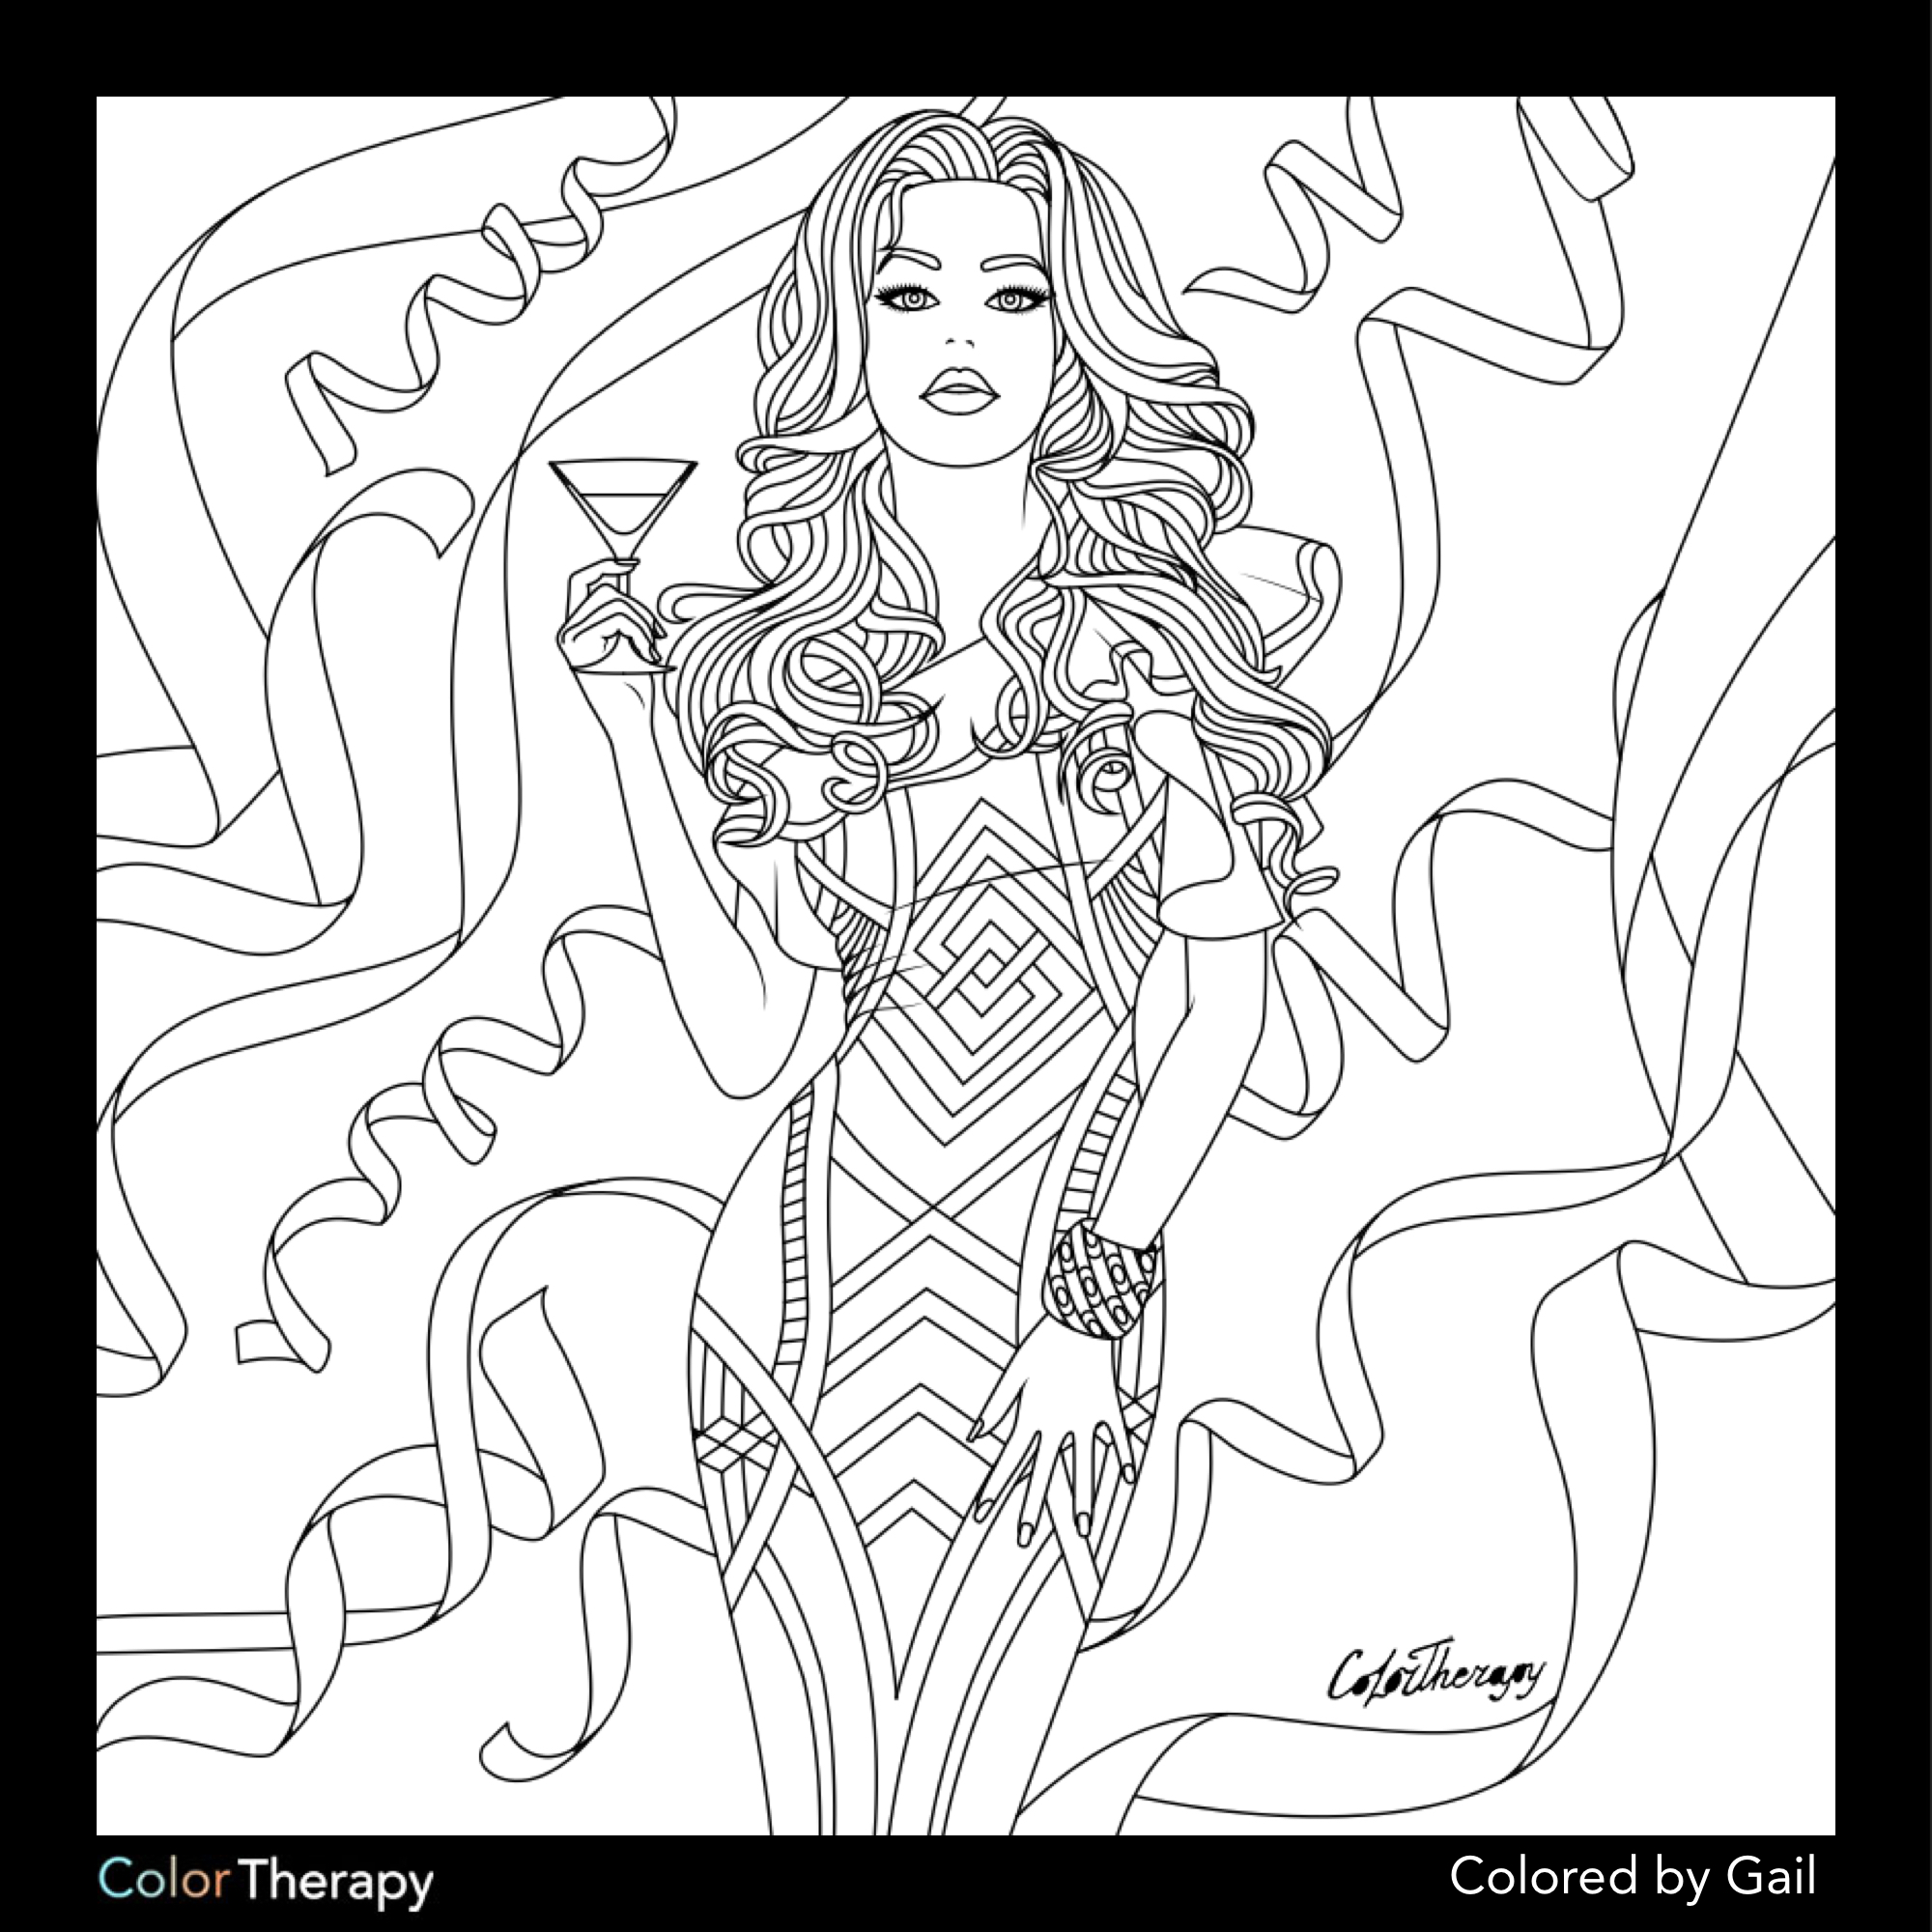 2000x2000 Coloring Pages App I Colored This Myself Using Unknown